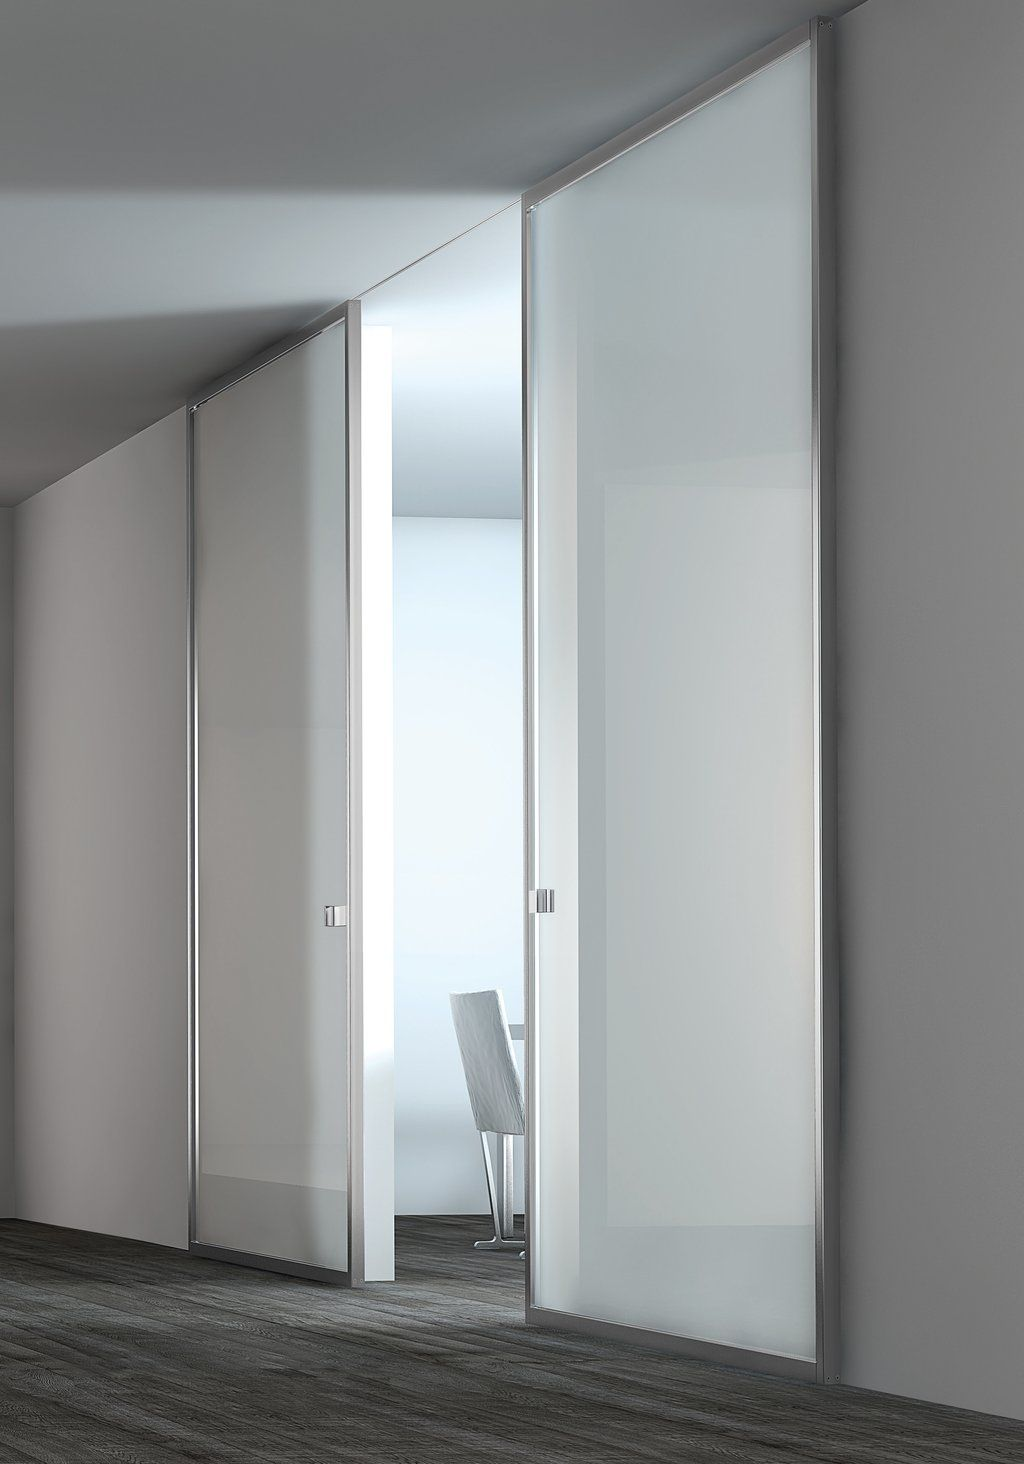 white lacquer glass panel stainless steel door. Black Bedroom Furniture Sets. Home Design Ideas